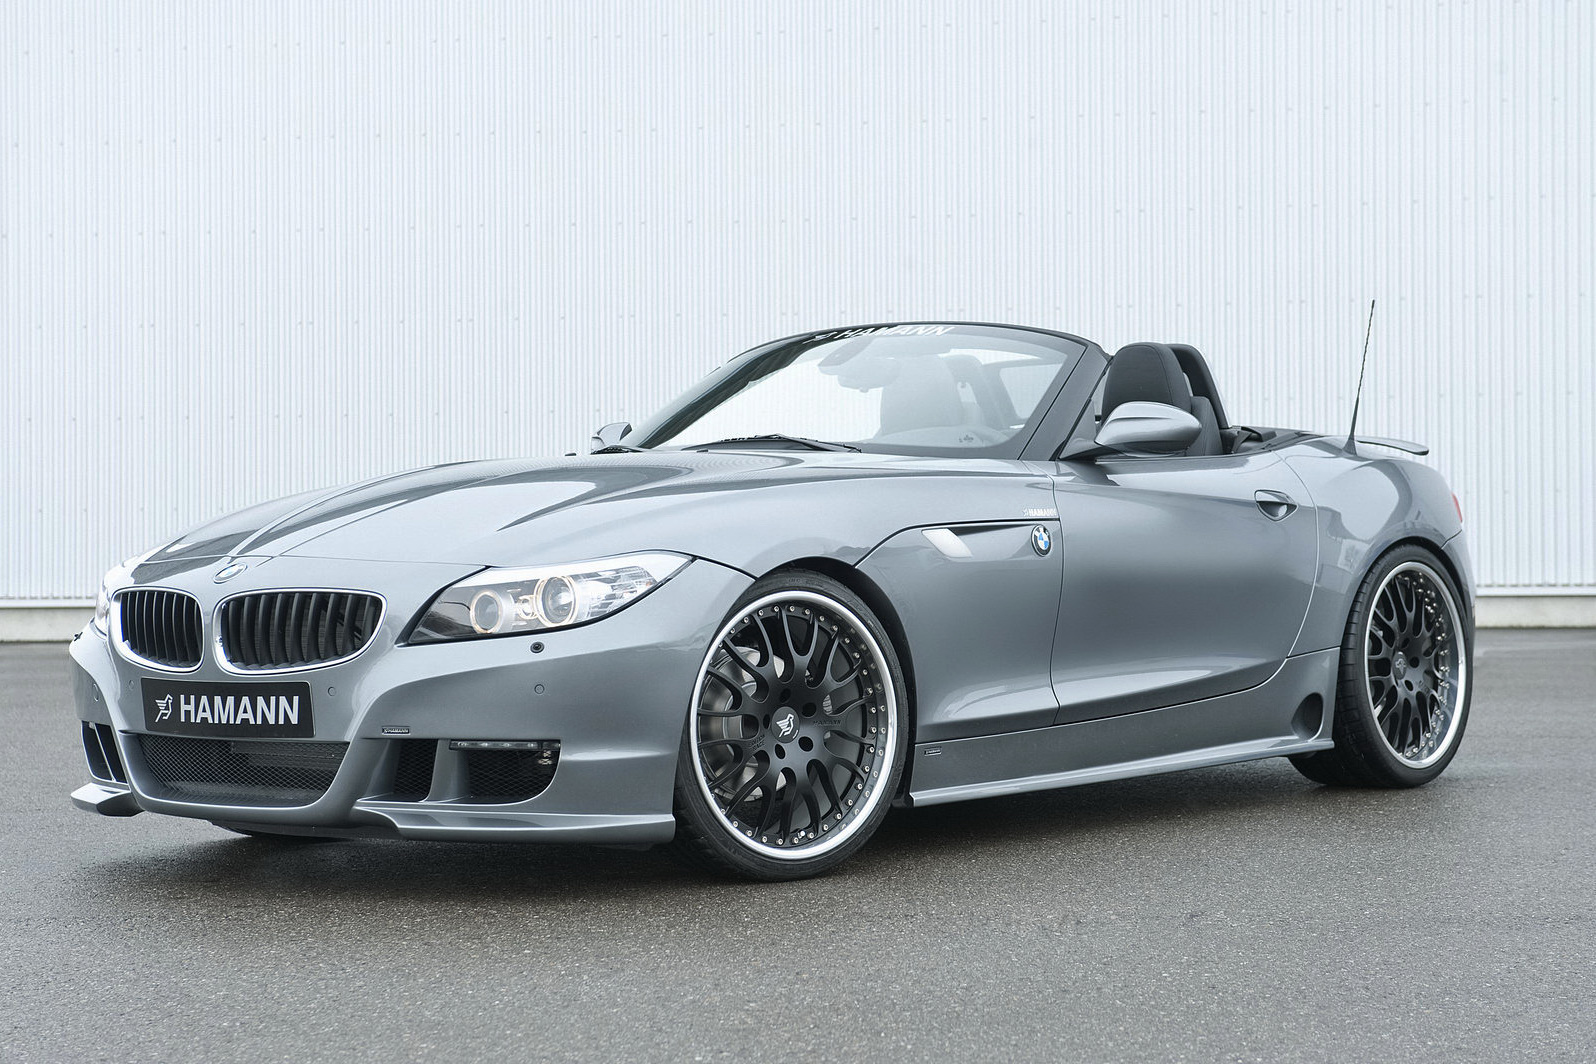 Hamann Builds A Bmw Z4 M Roadster E89